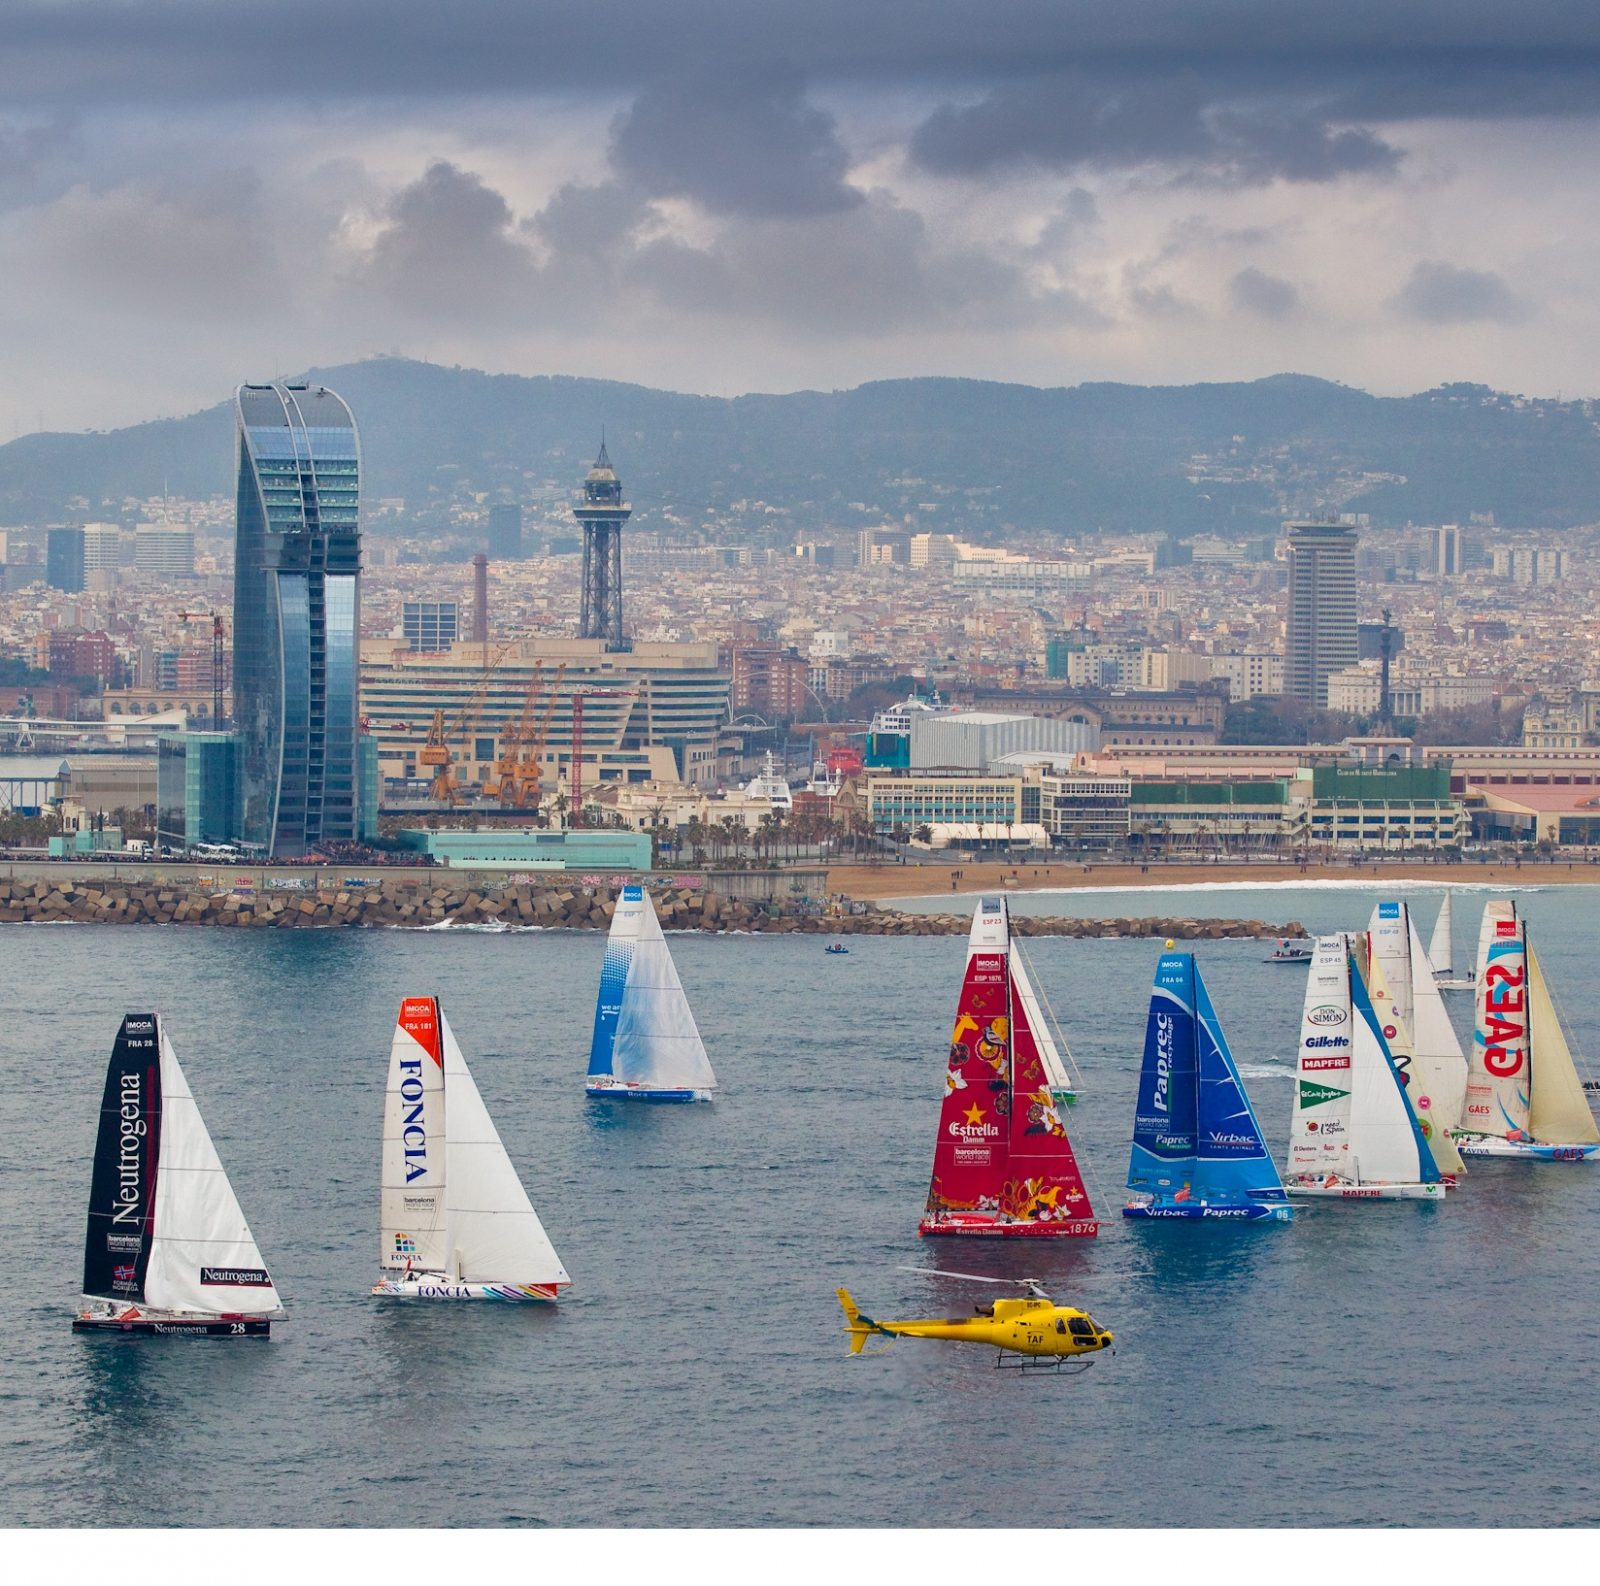 Barcelone World Race: le tour du monde à la voile